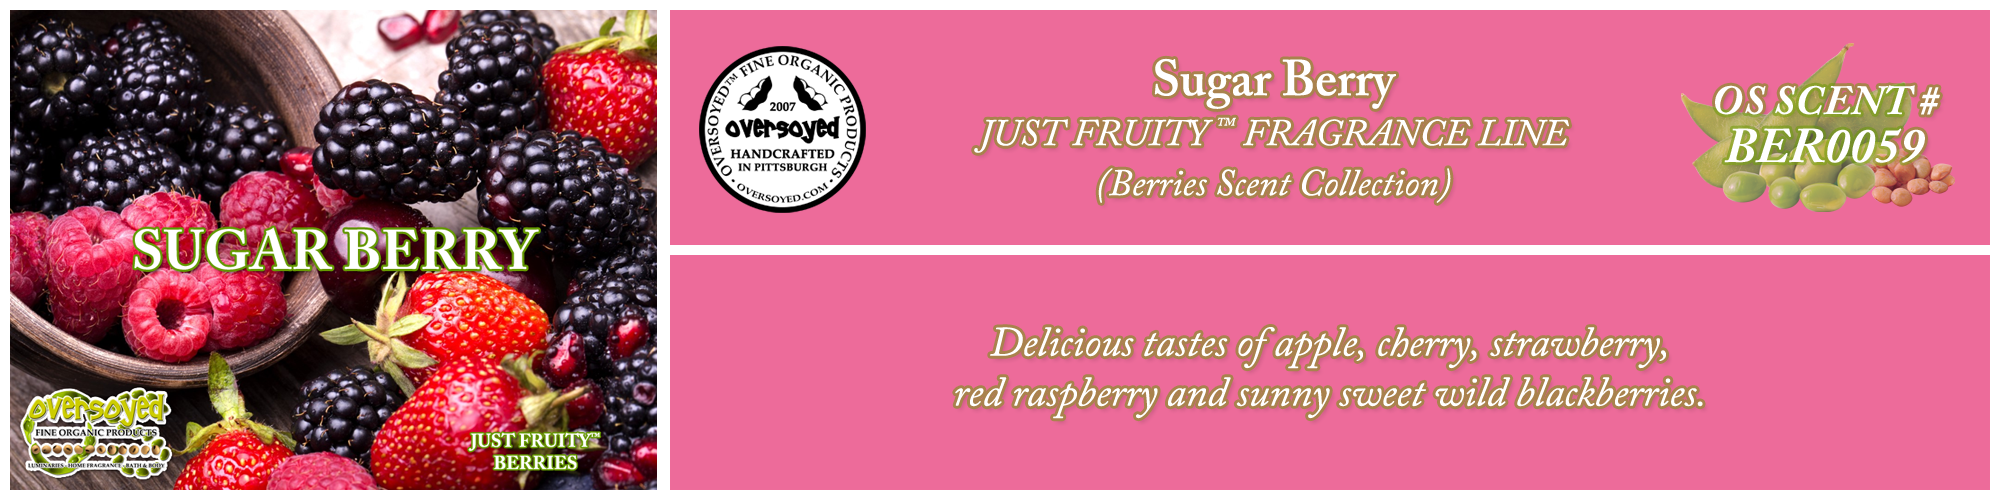 Sugar Berry Handcrafted Products Collection